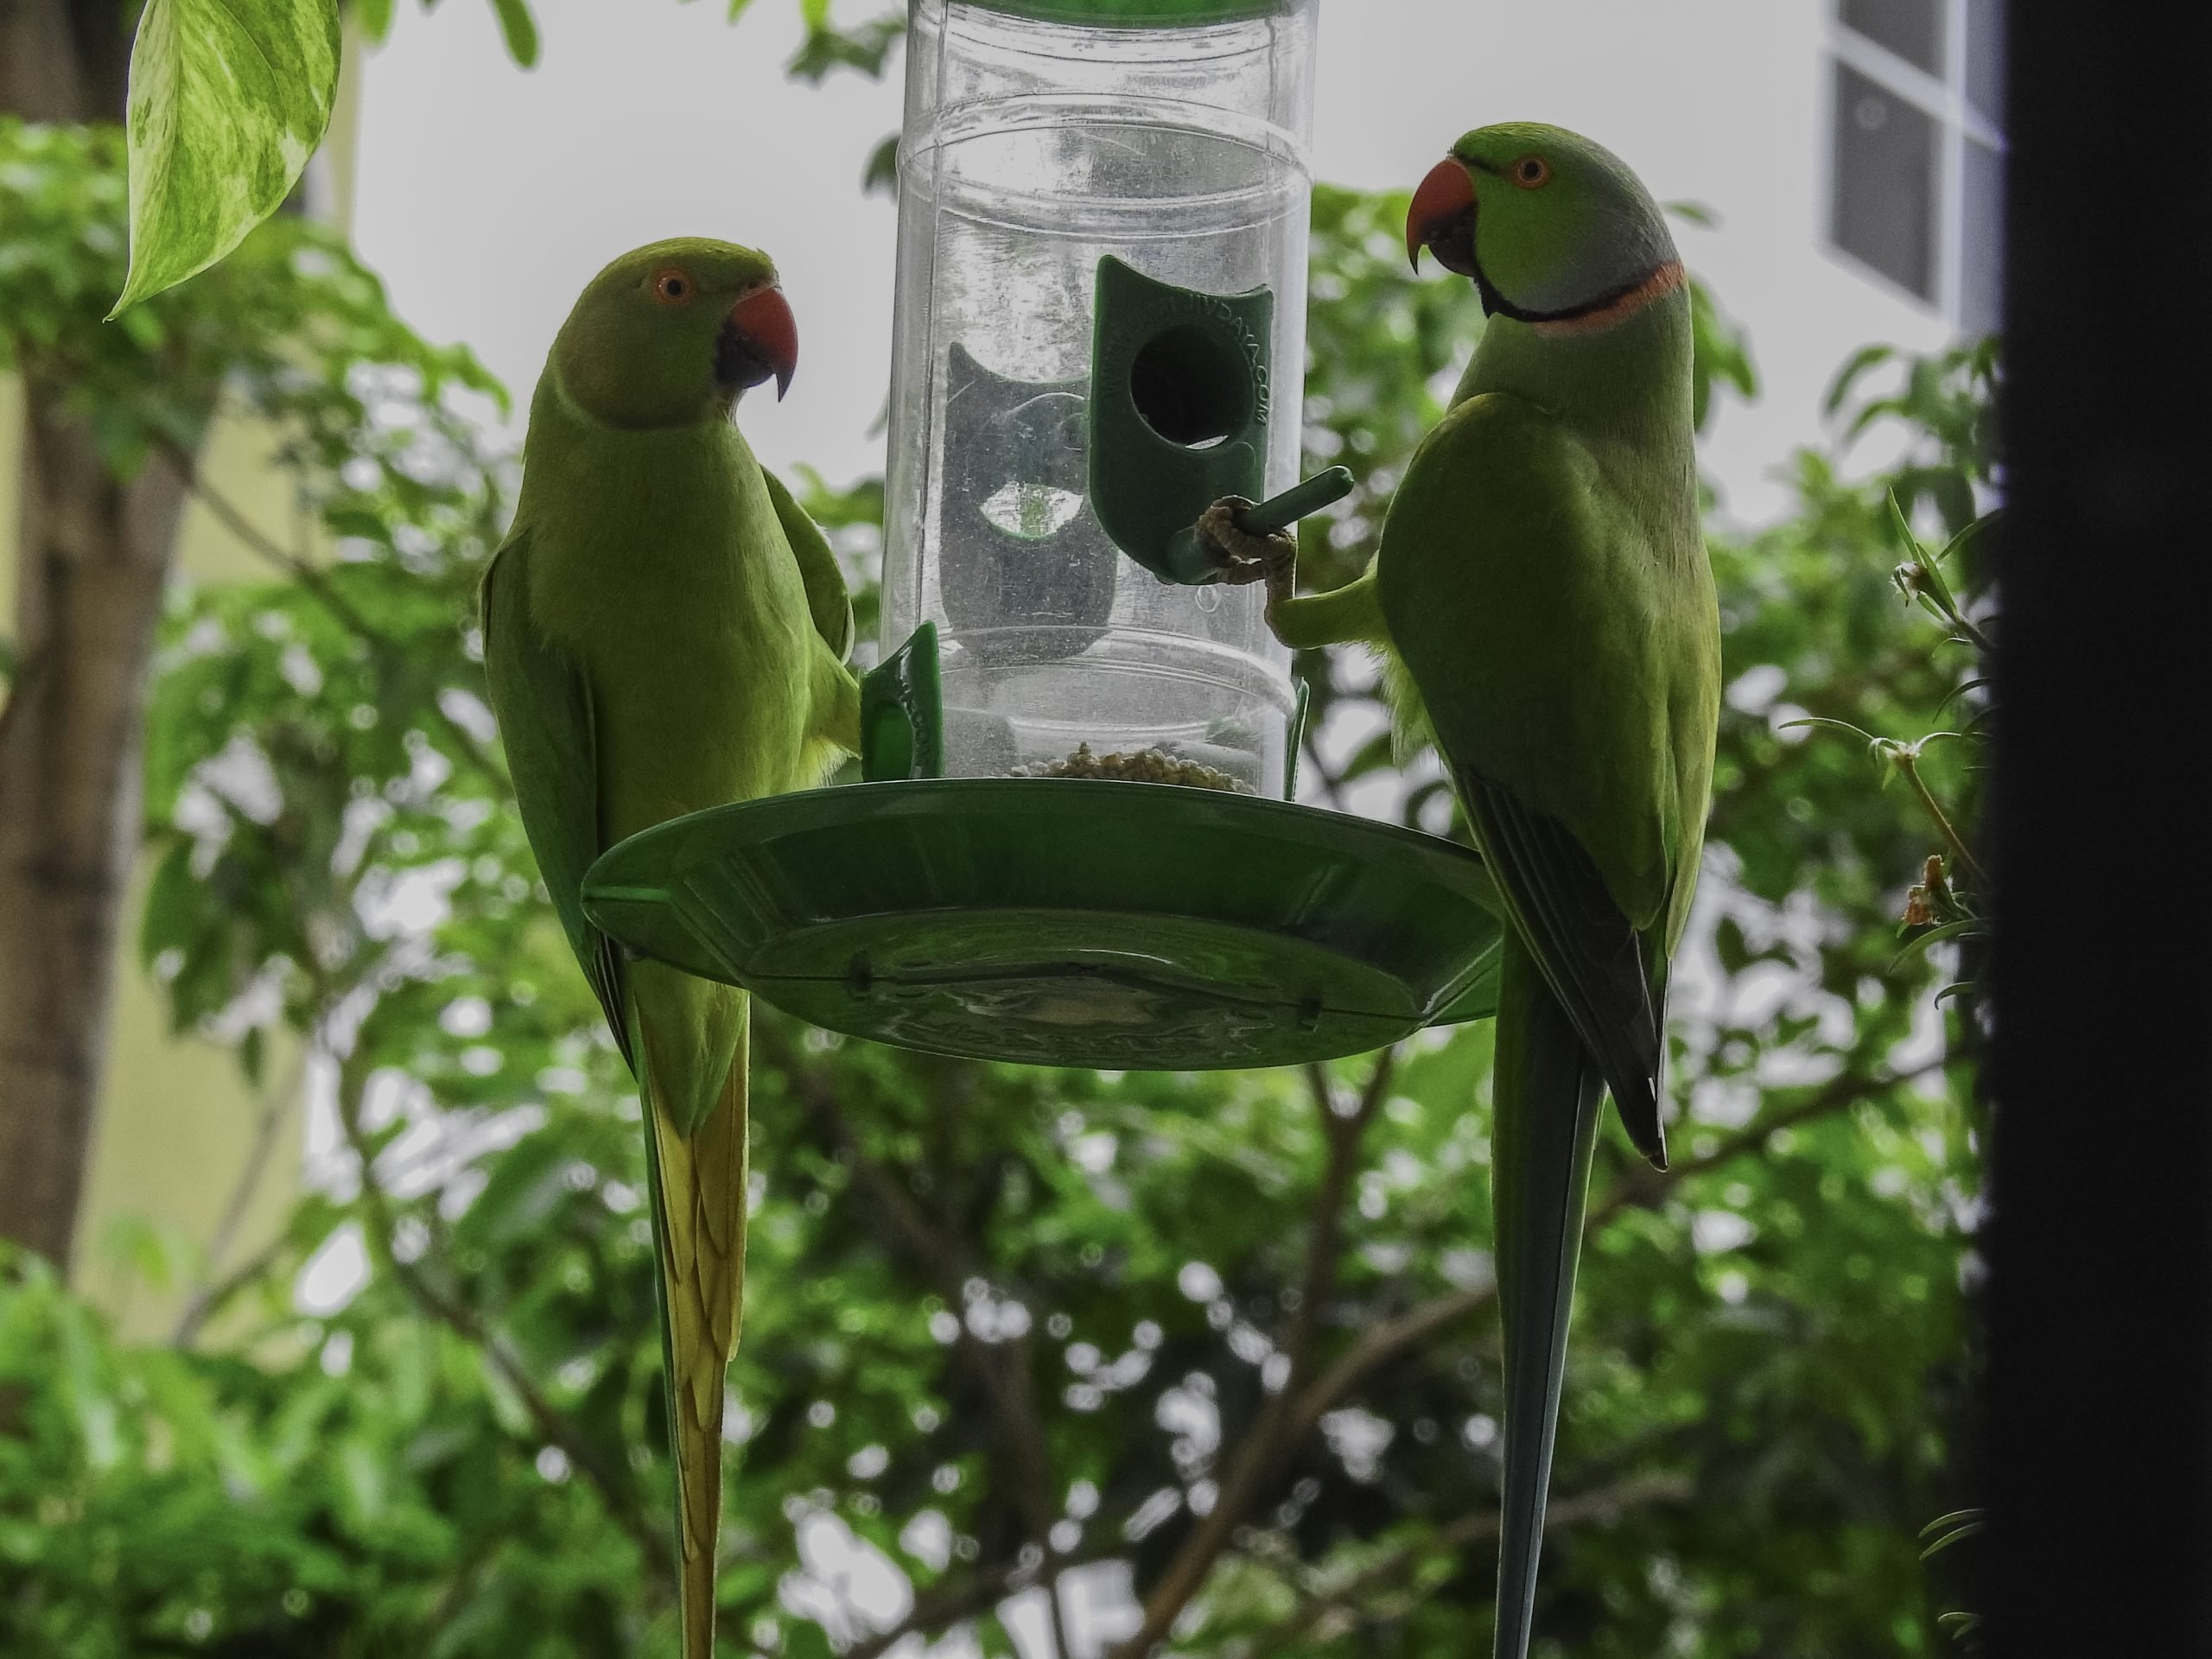 Feeding food to couple of parrots.